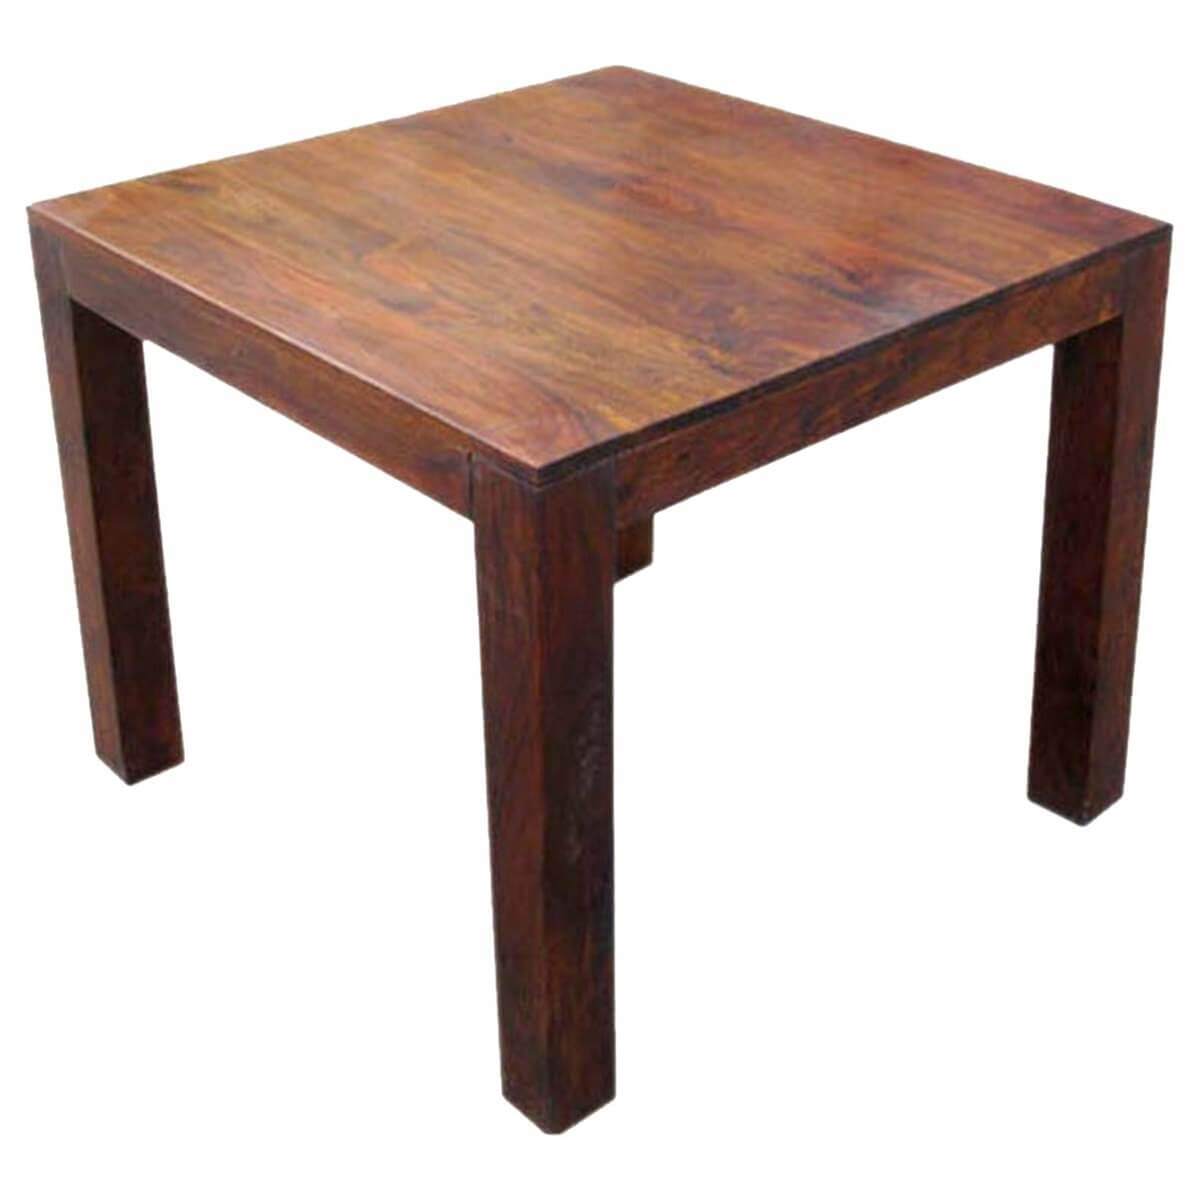 Kluane contemporary solid wood square dinette dining table for Solid wood dining table